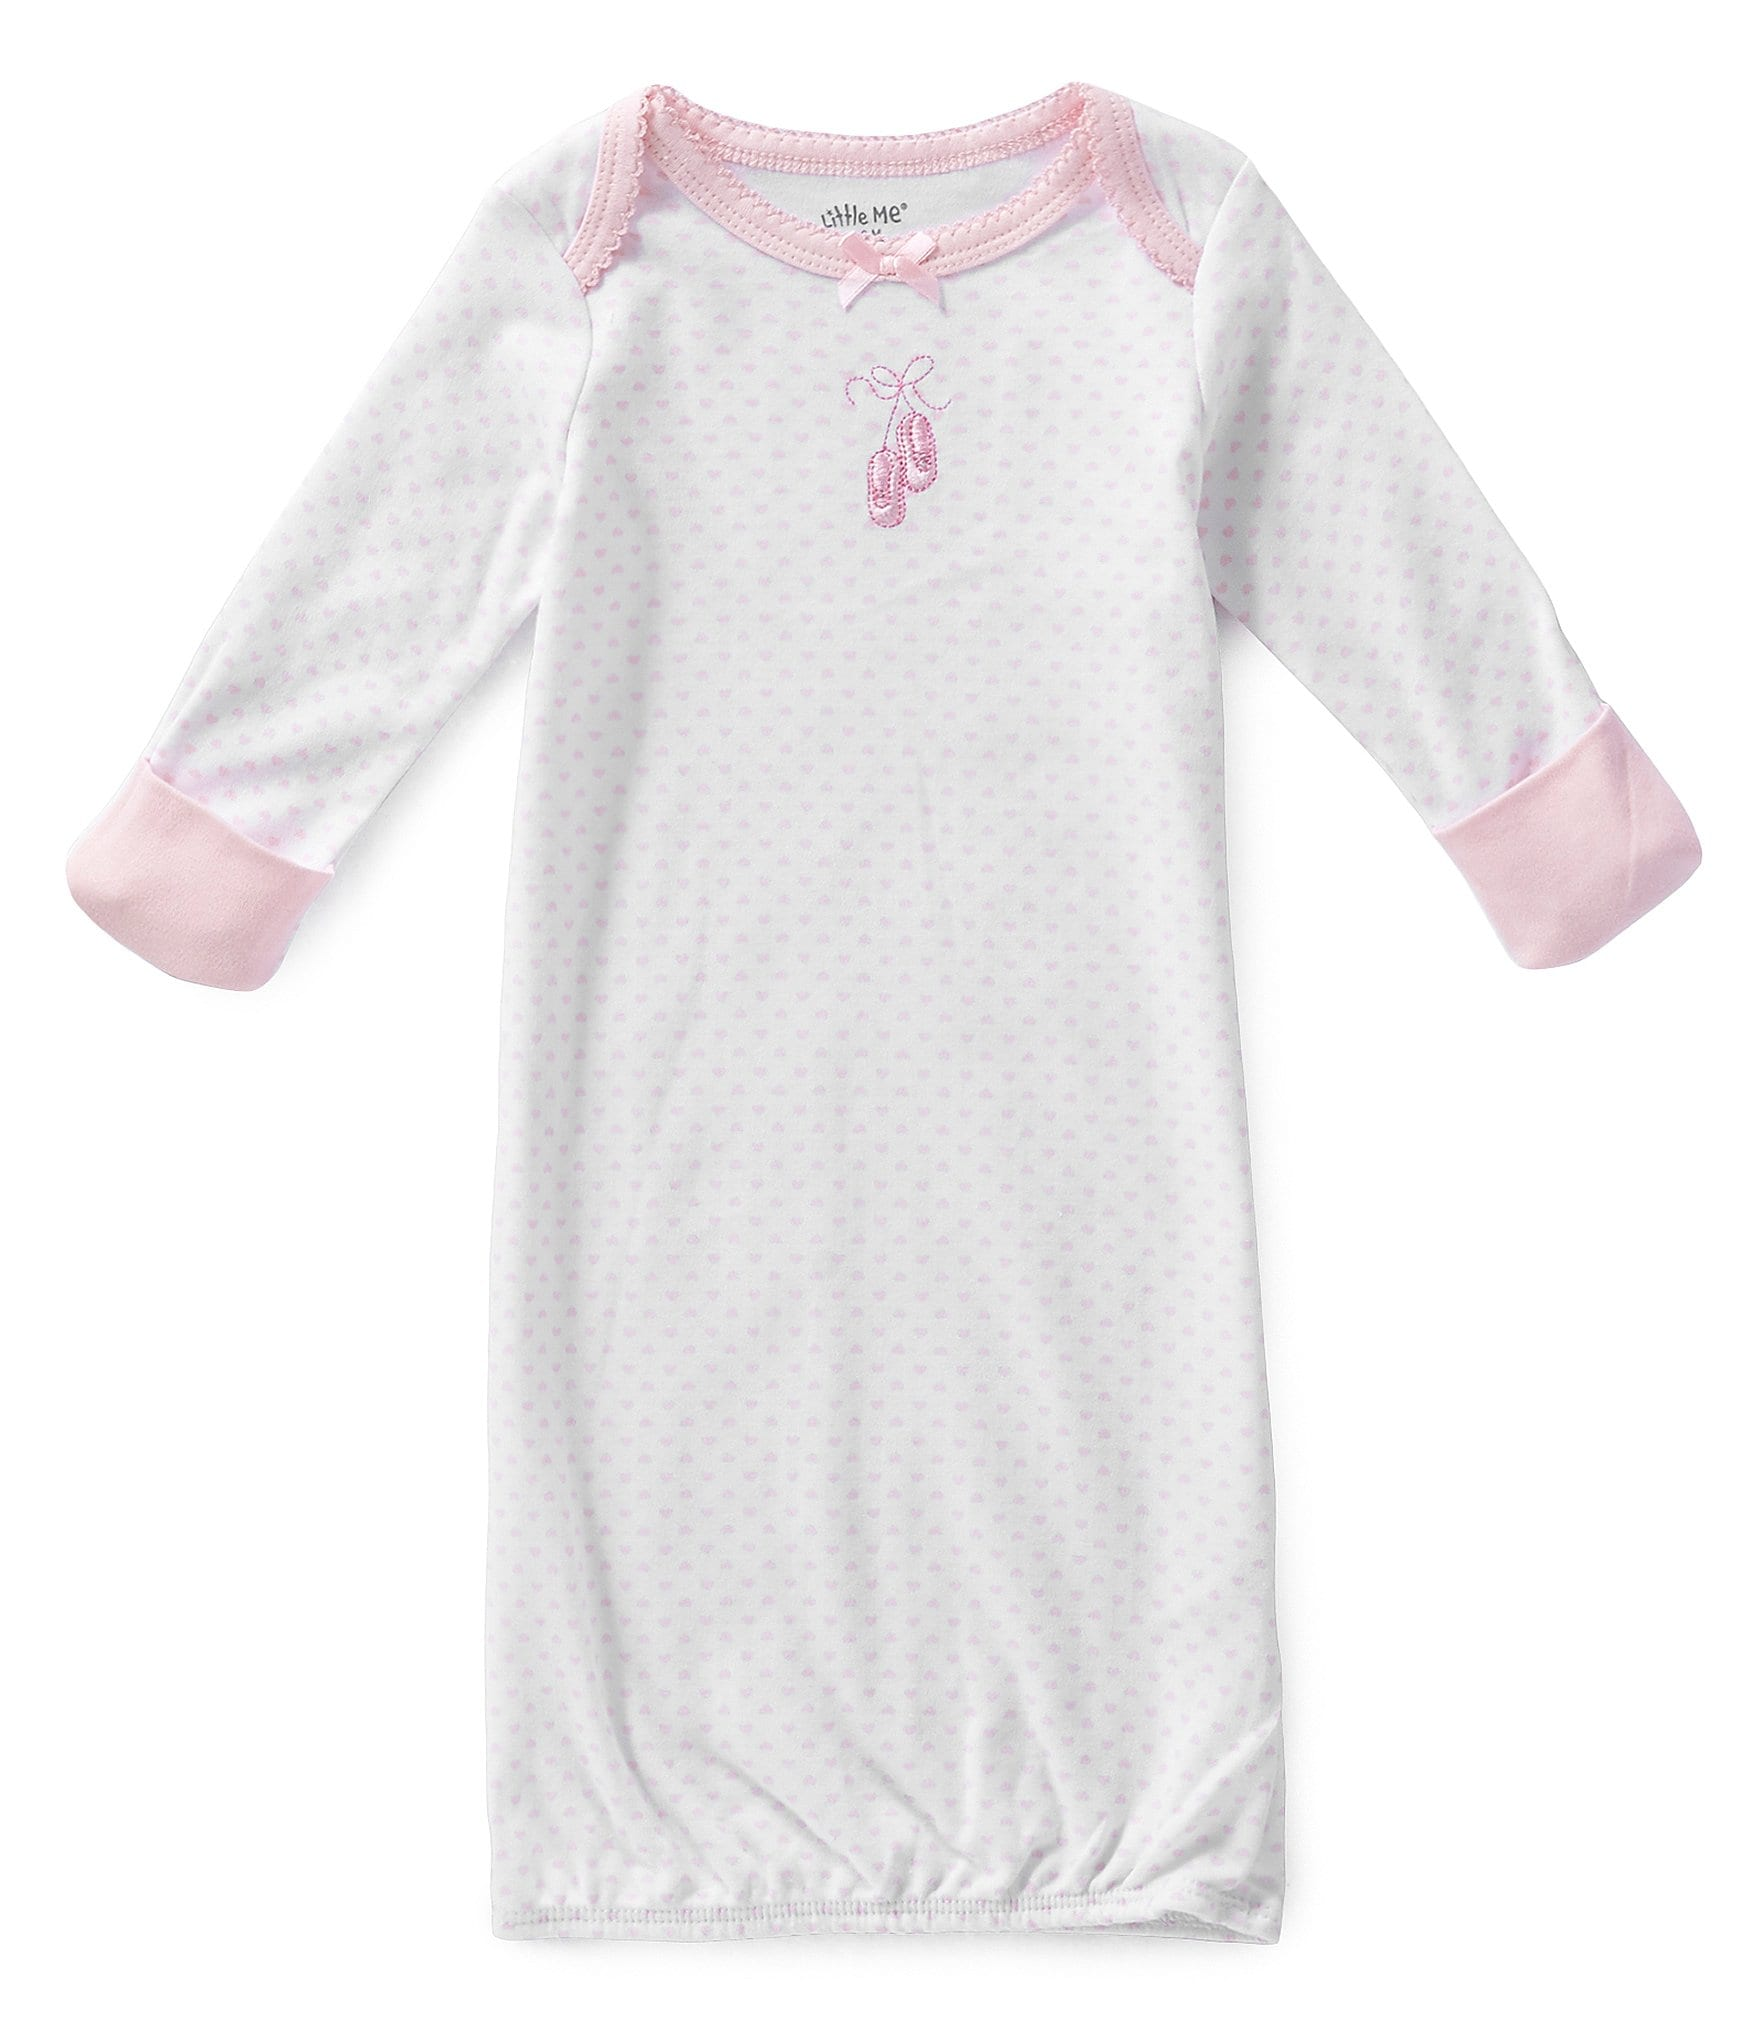 Little Me Baby Girl Clothing | Dillards